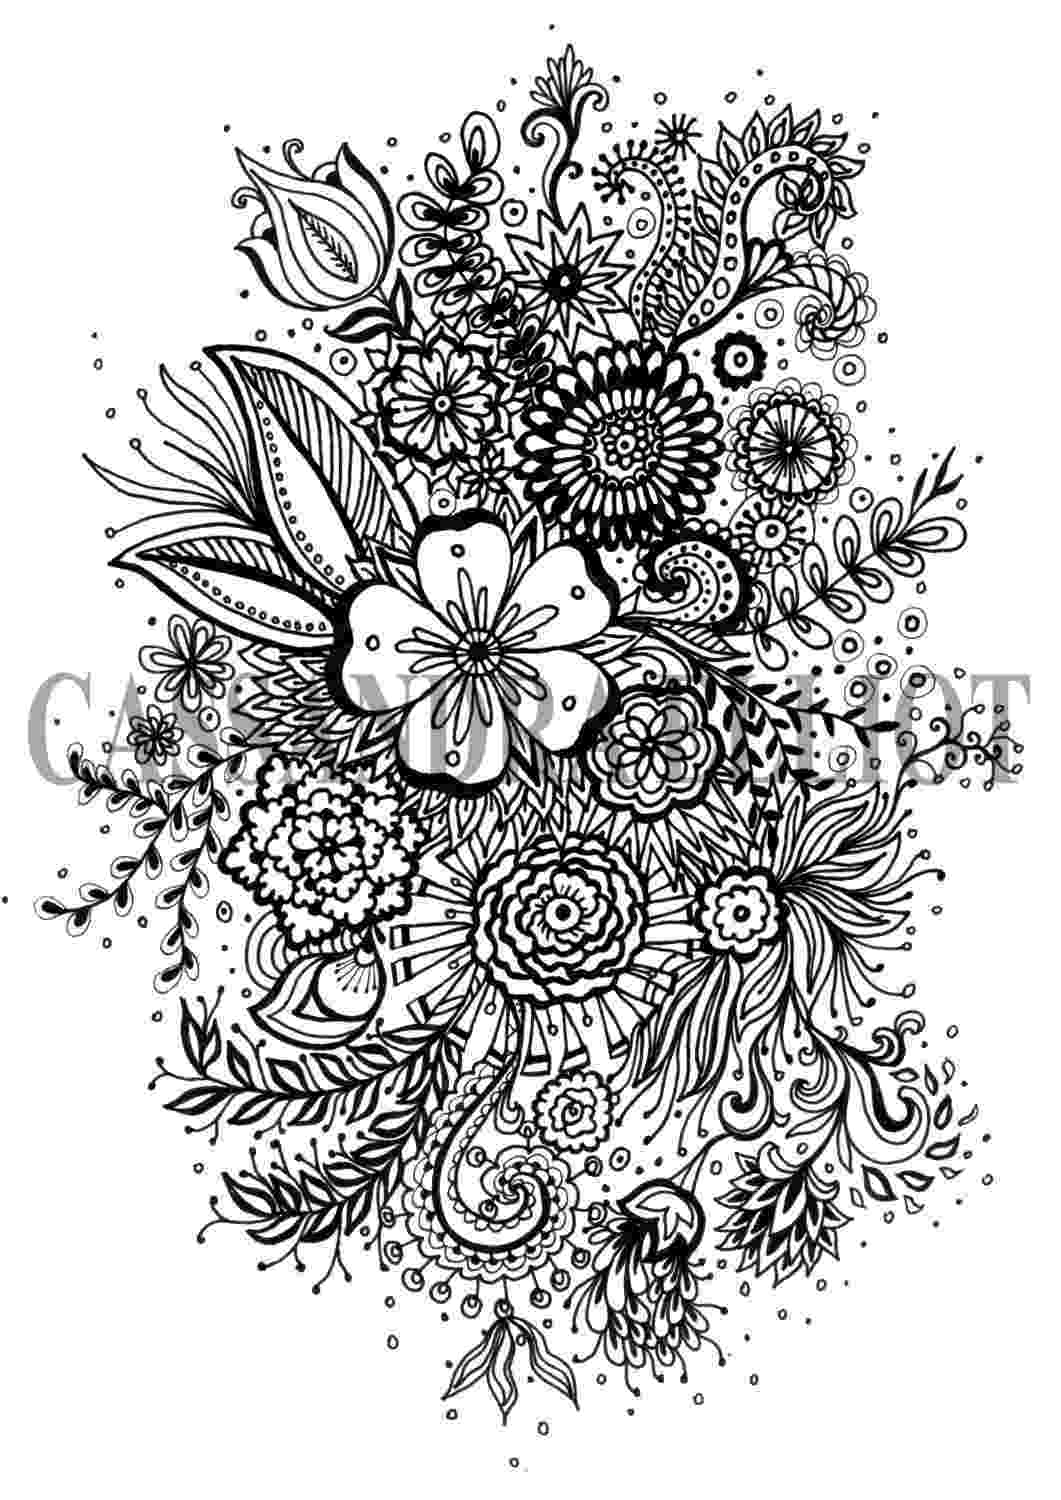 flower coloring patterns hearts and flowers pattern coloring page free printable flower coloring patterns